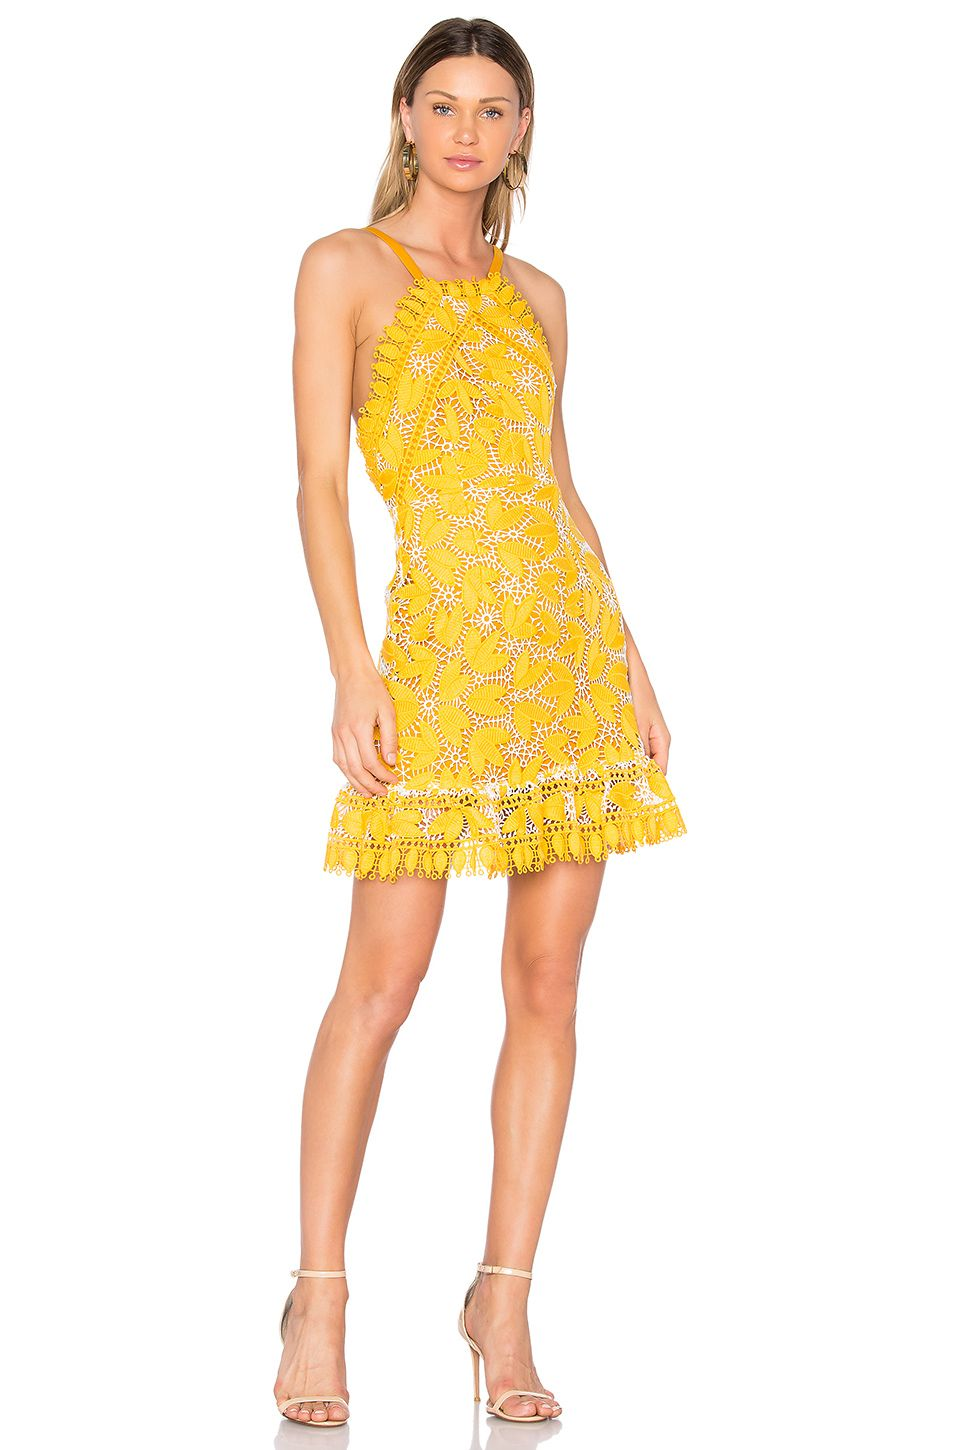 aijek Marianna Halter Dress in Yellow | Covet | Pinterest